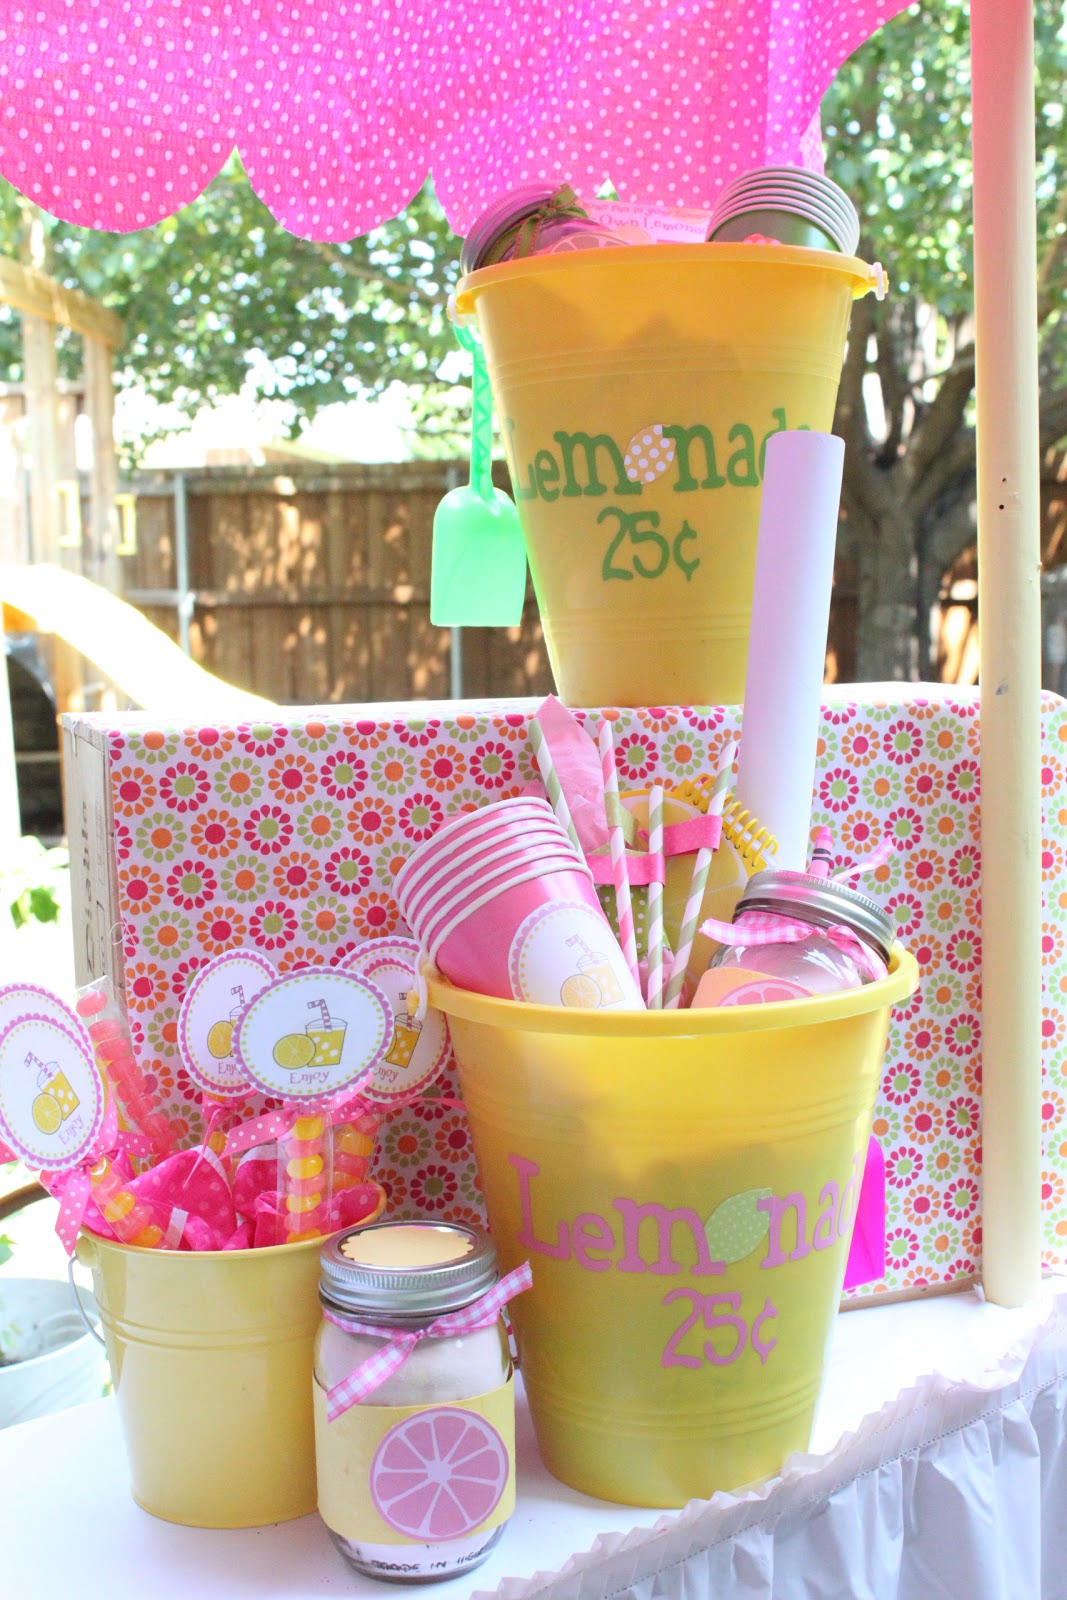 Lemonade stand kit free printable and summer camp link for Cool lemonade stand ideas